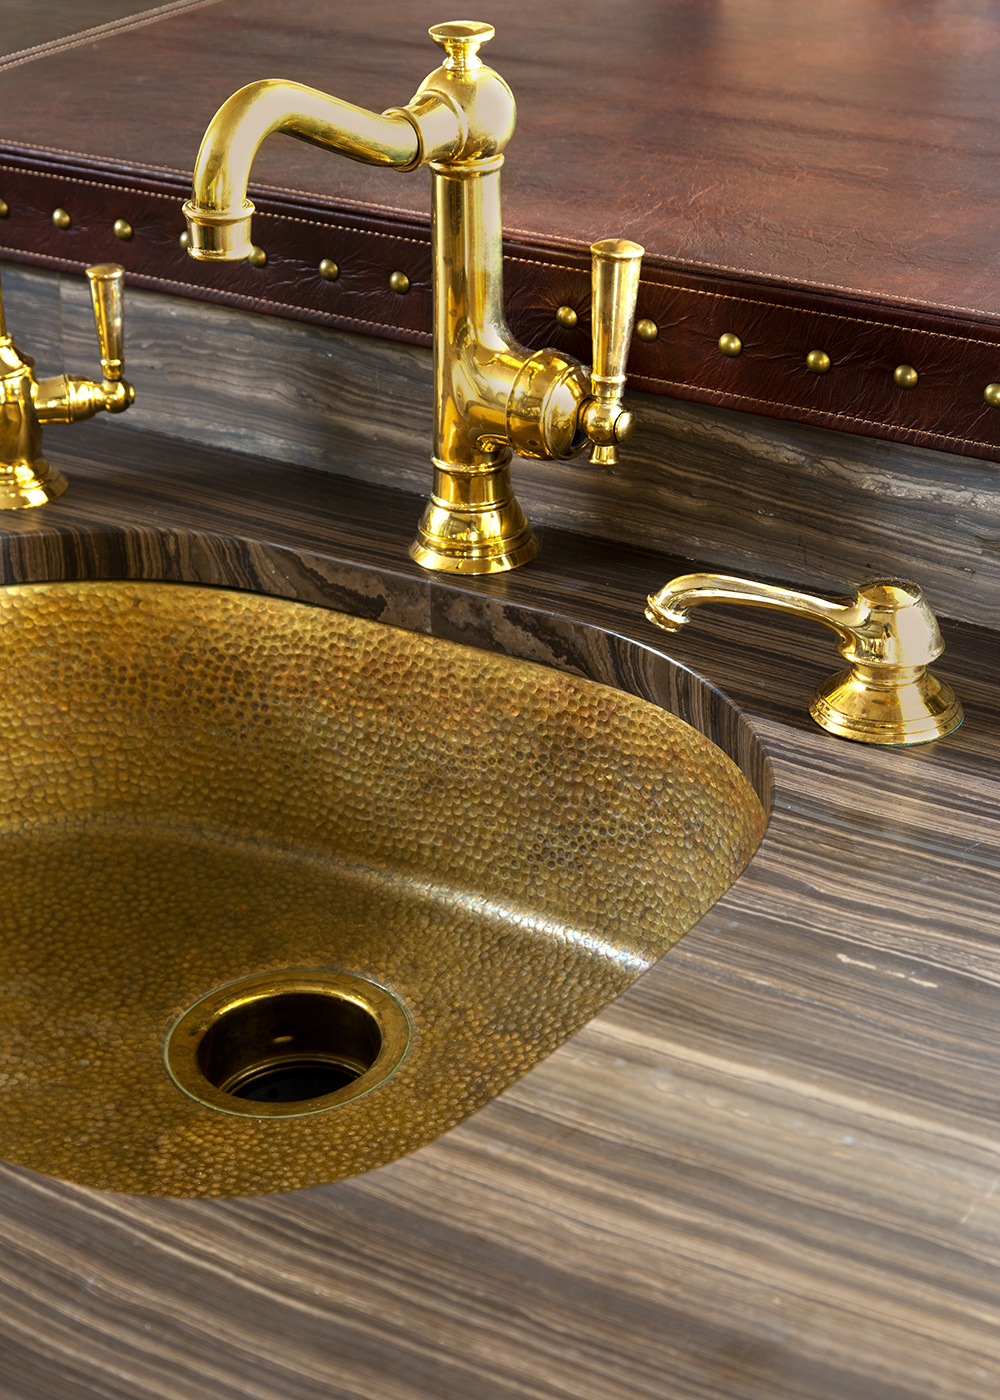 Golden sink, luxury kitchen accessory